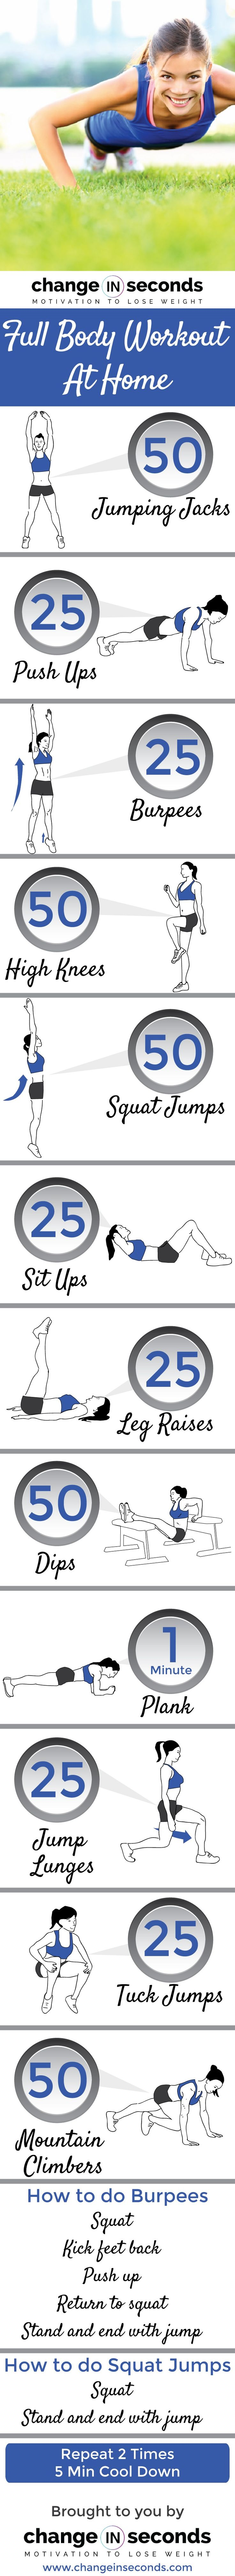 Full Body Workout At Home (Download PDF) http://www.changeinseconds.com/full-body-workout-at-home/